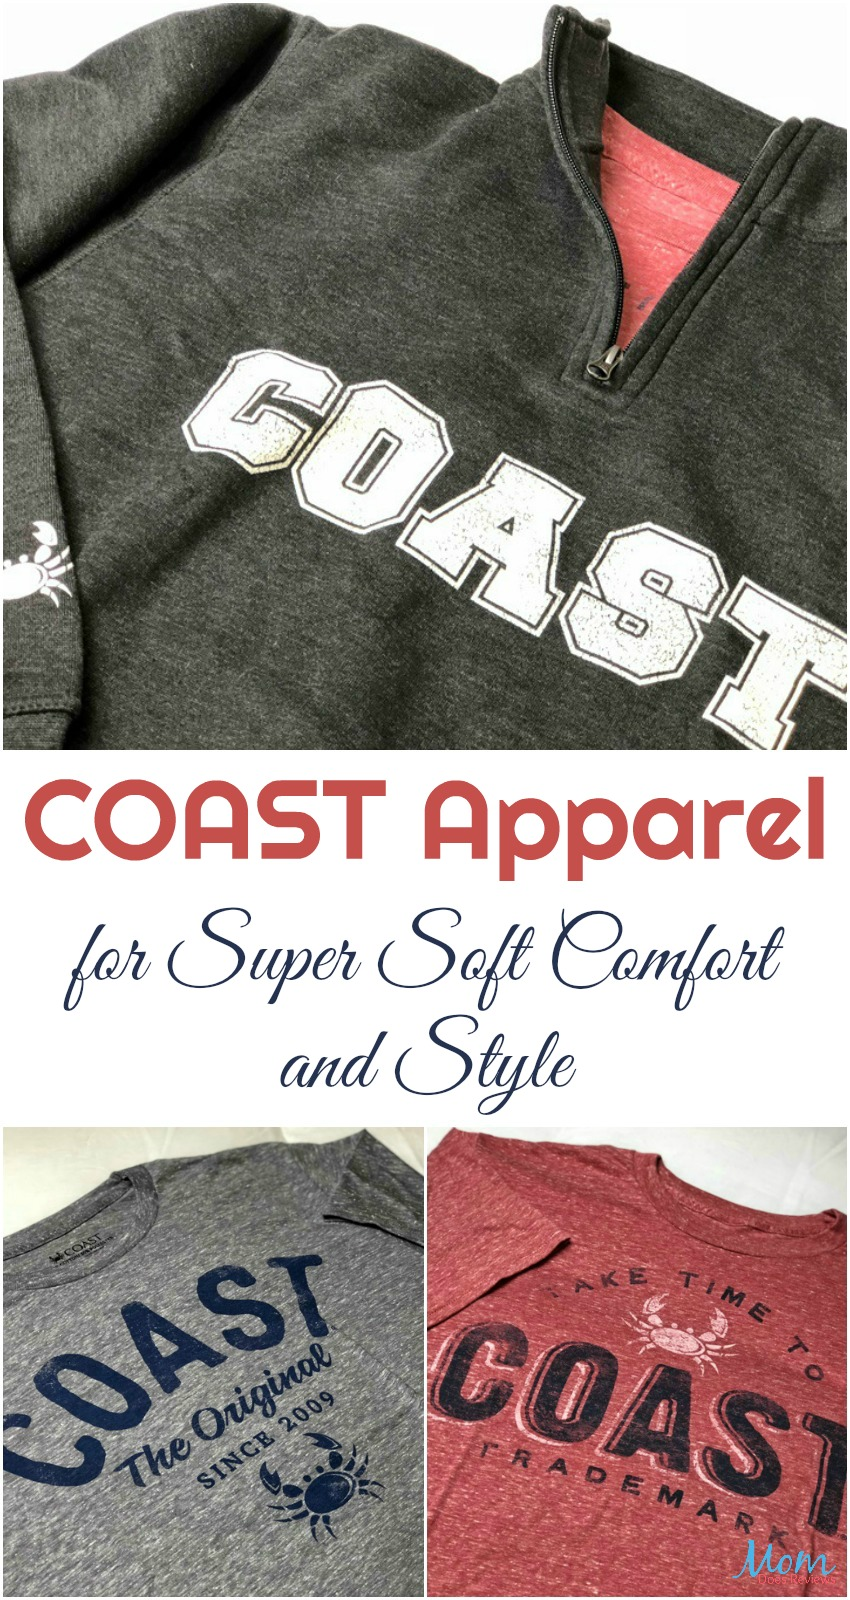 COAST Apparel for Super Soft Comfort and Style